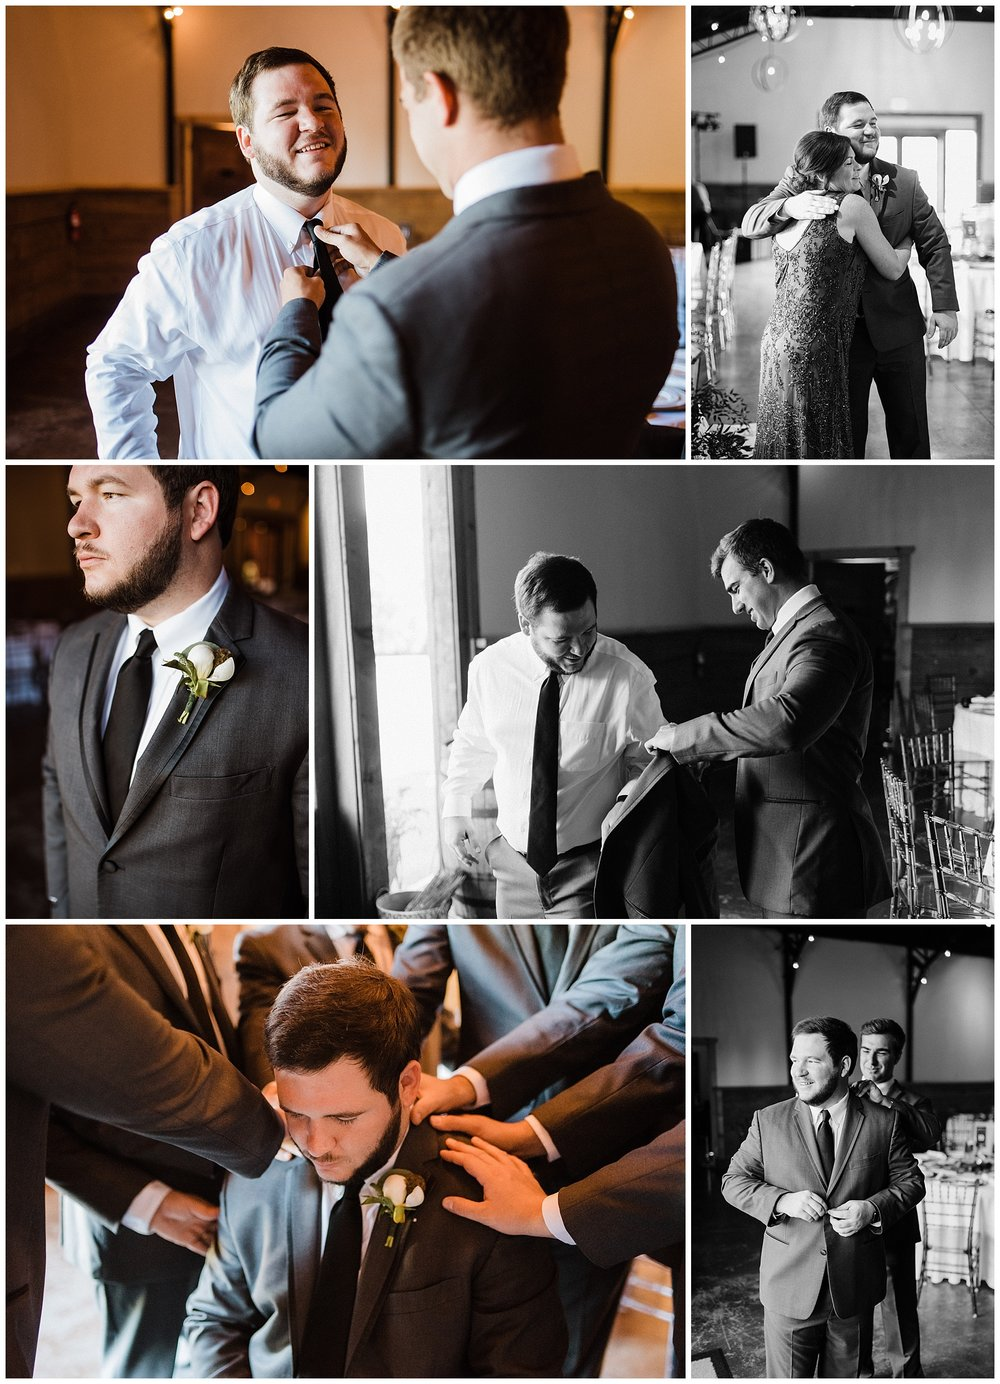 Tanner Burge Photo - Blake, Groom, getting ready